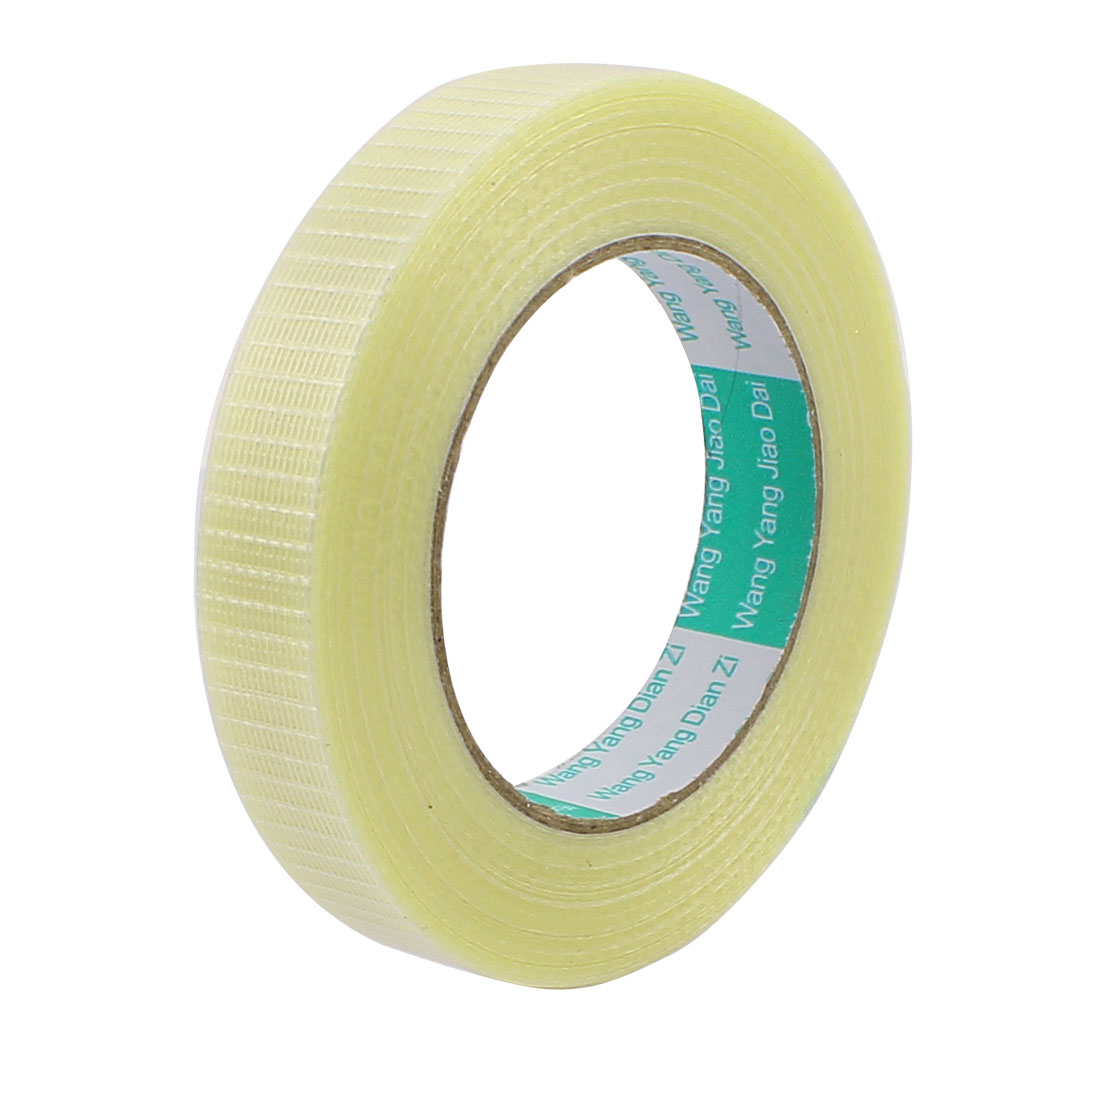 20mm Height 50M Length Long Adhesive Insulating Grid Glass Fiber Tape Roll